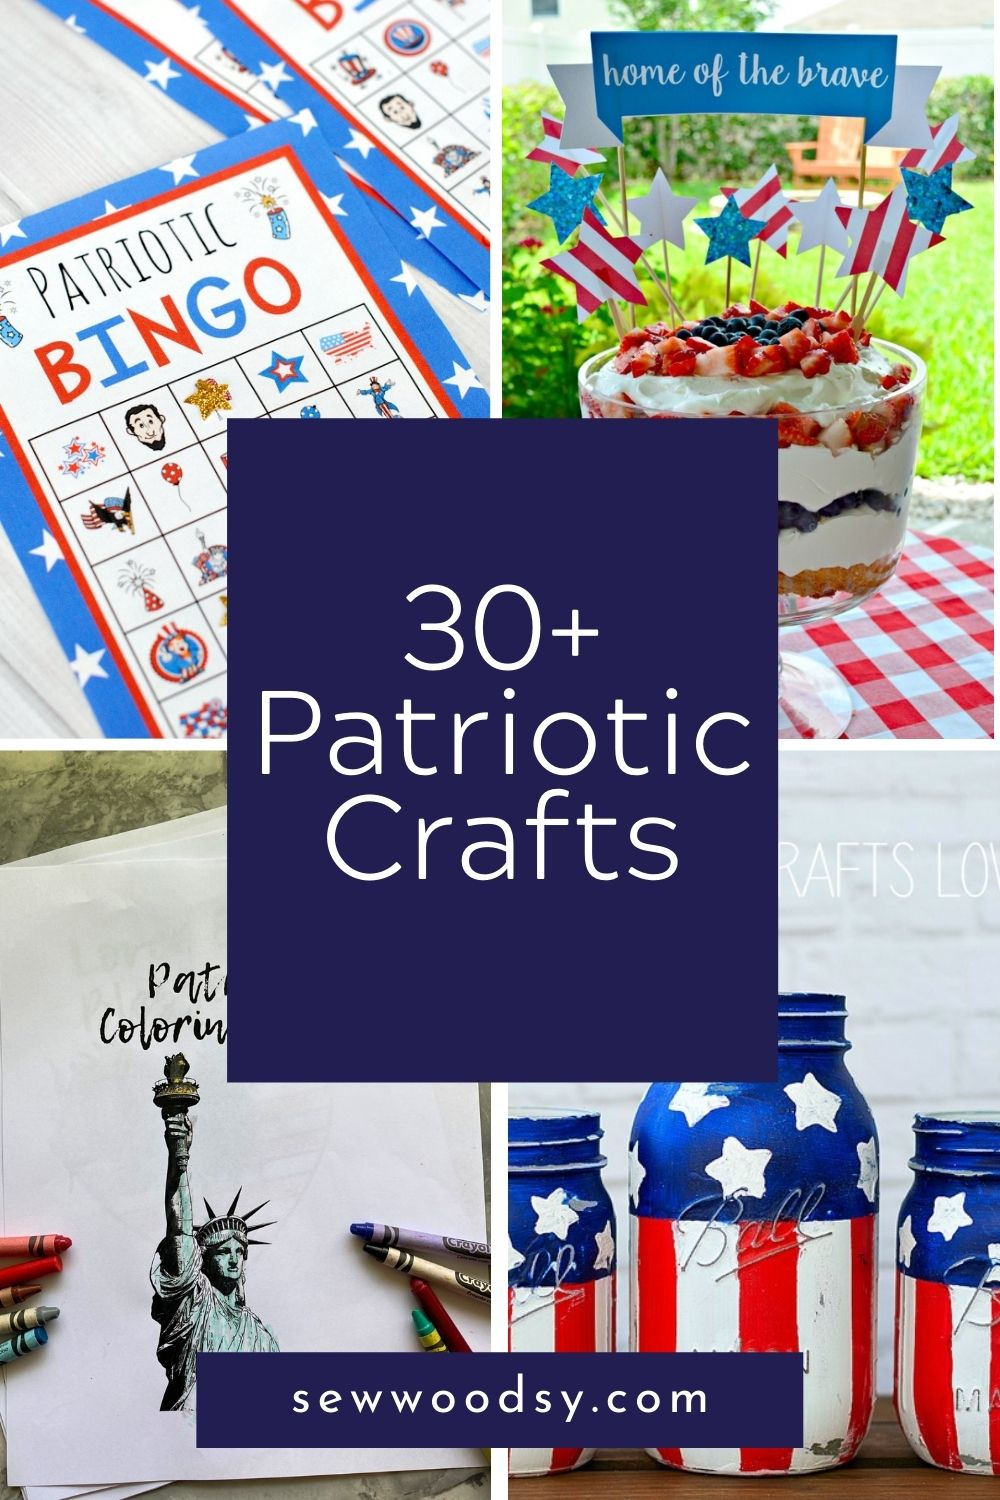 Four photos of Patriotic Crafts; bingo, topper, mason jars, and coloring pages with text on image for Pinterest.